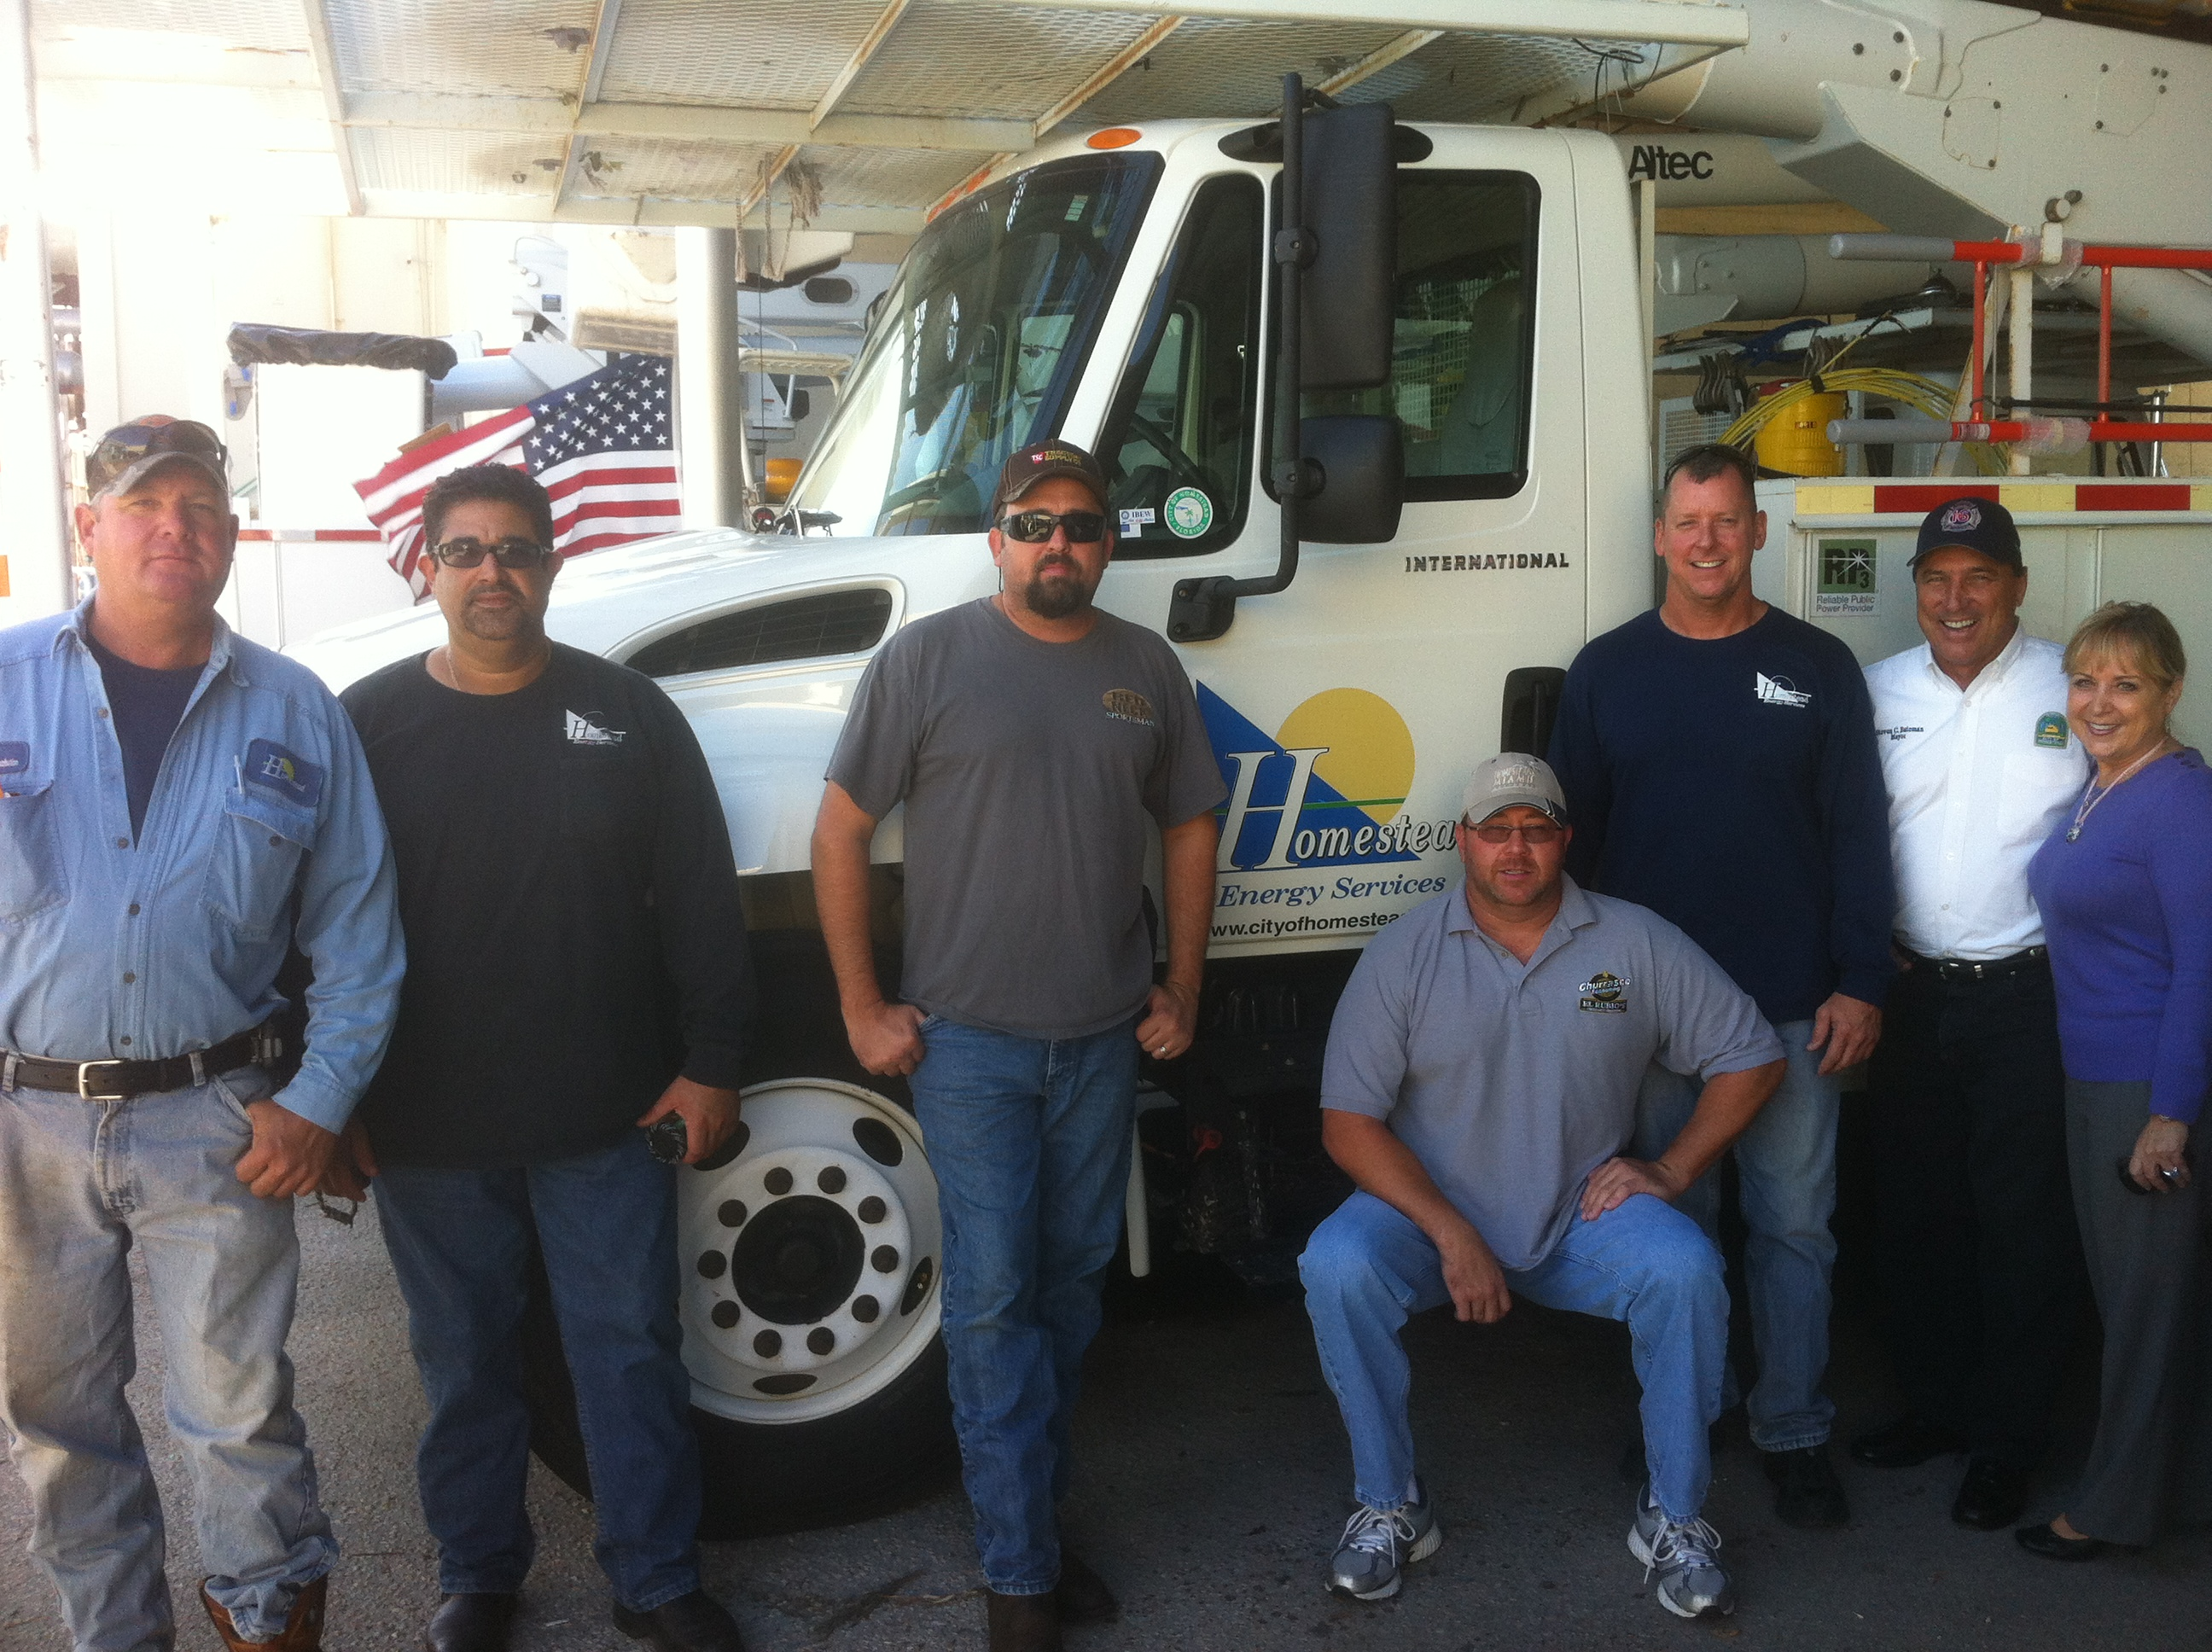 Homestead Energy Services crew to NY